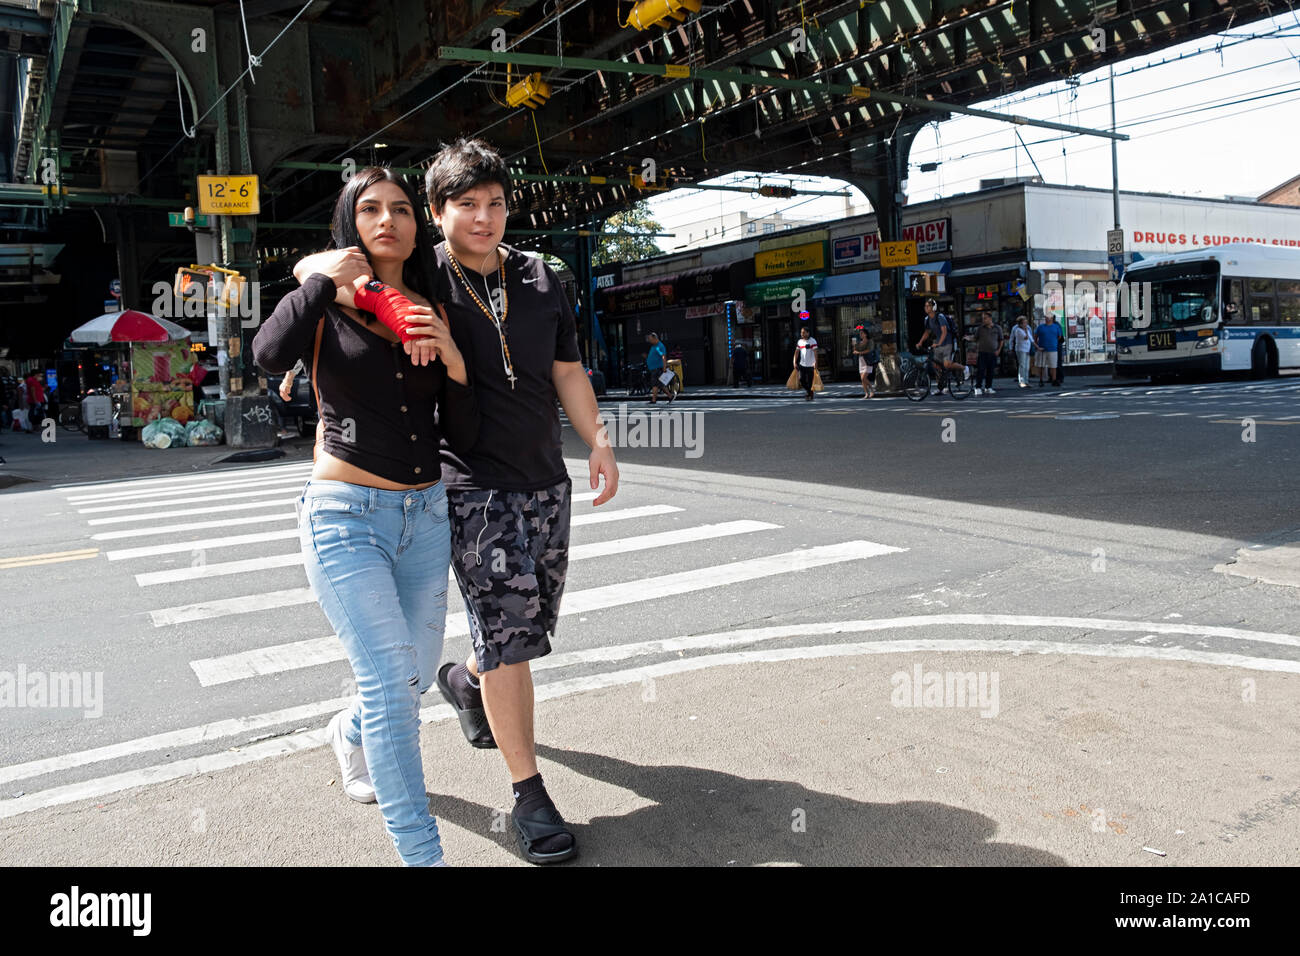 A young couple, likely South American, walk together under the elevated subway in Jackson Heights, Queens, New York City, Stock Photo